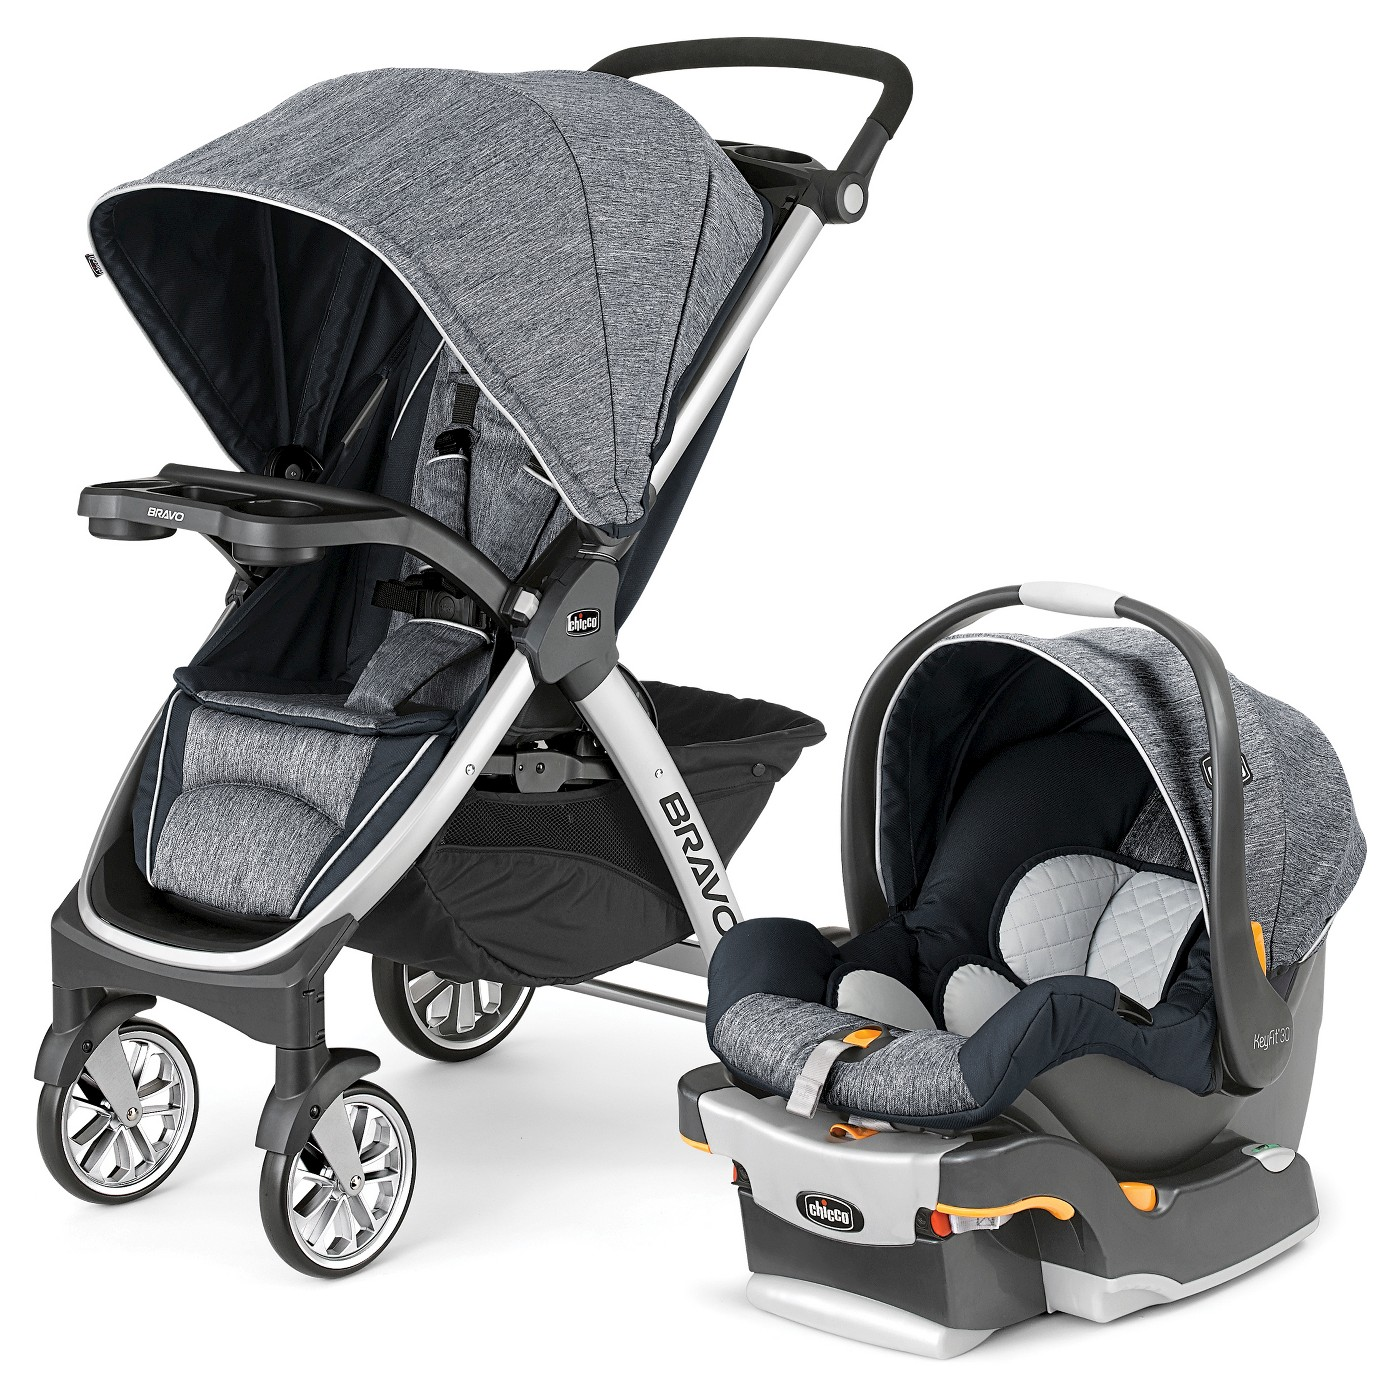 bea3c4945761 Graco Nautilus 65 3-in-1 Harness Booster Seat With Safety Surround  89.99  (reg.  179.99). Chicco Bravo Travel System - Indigo - image 1 of 3